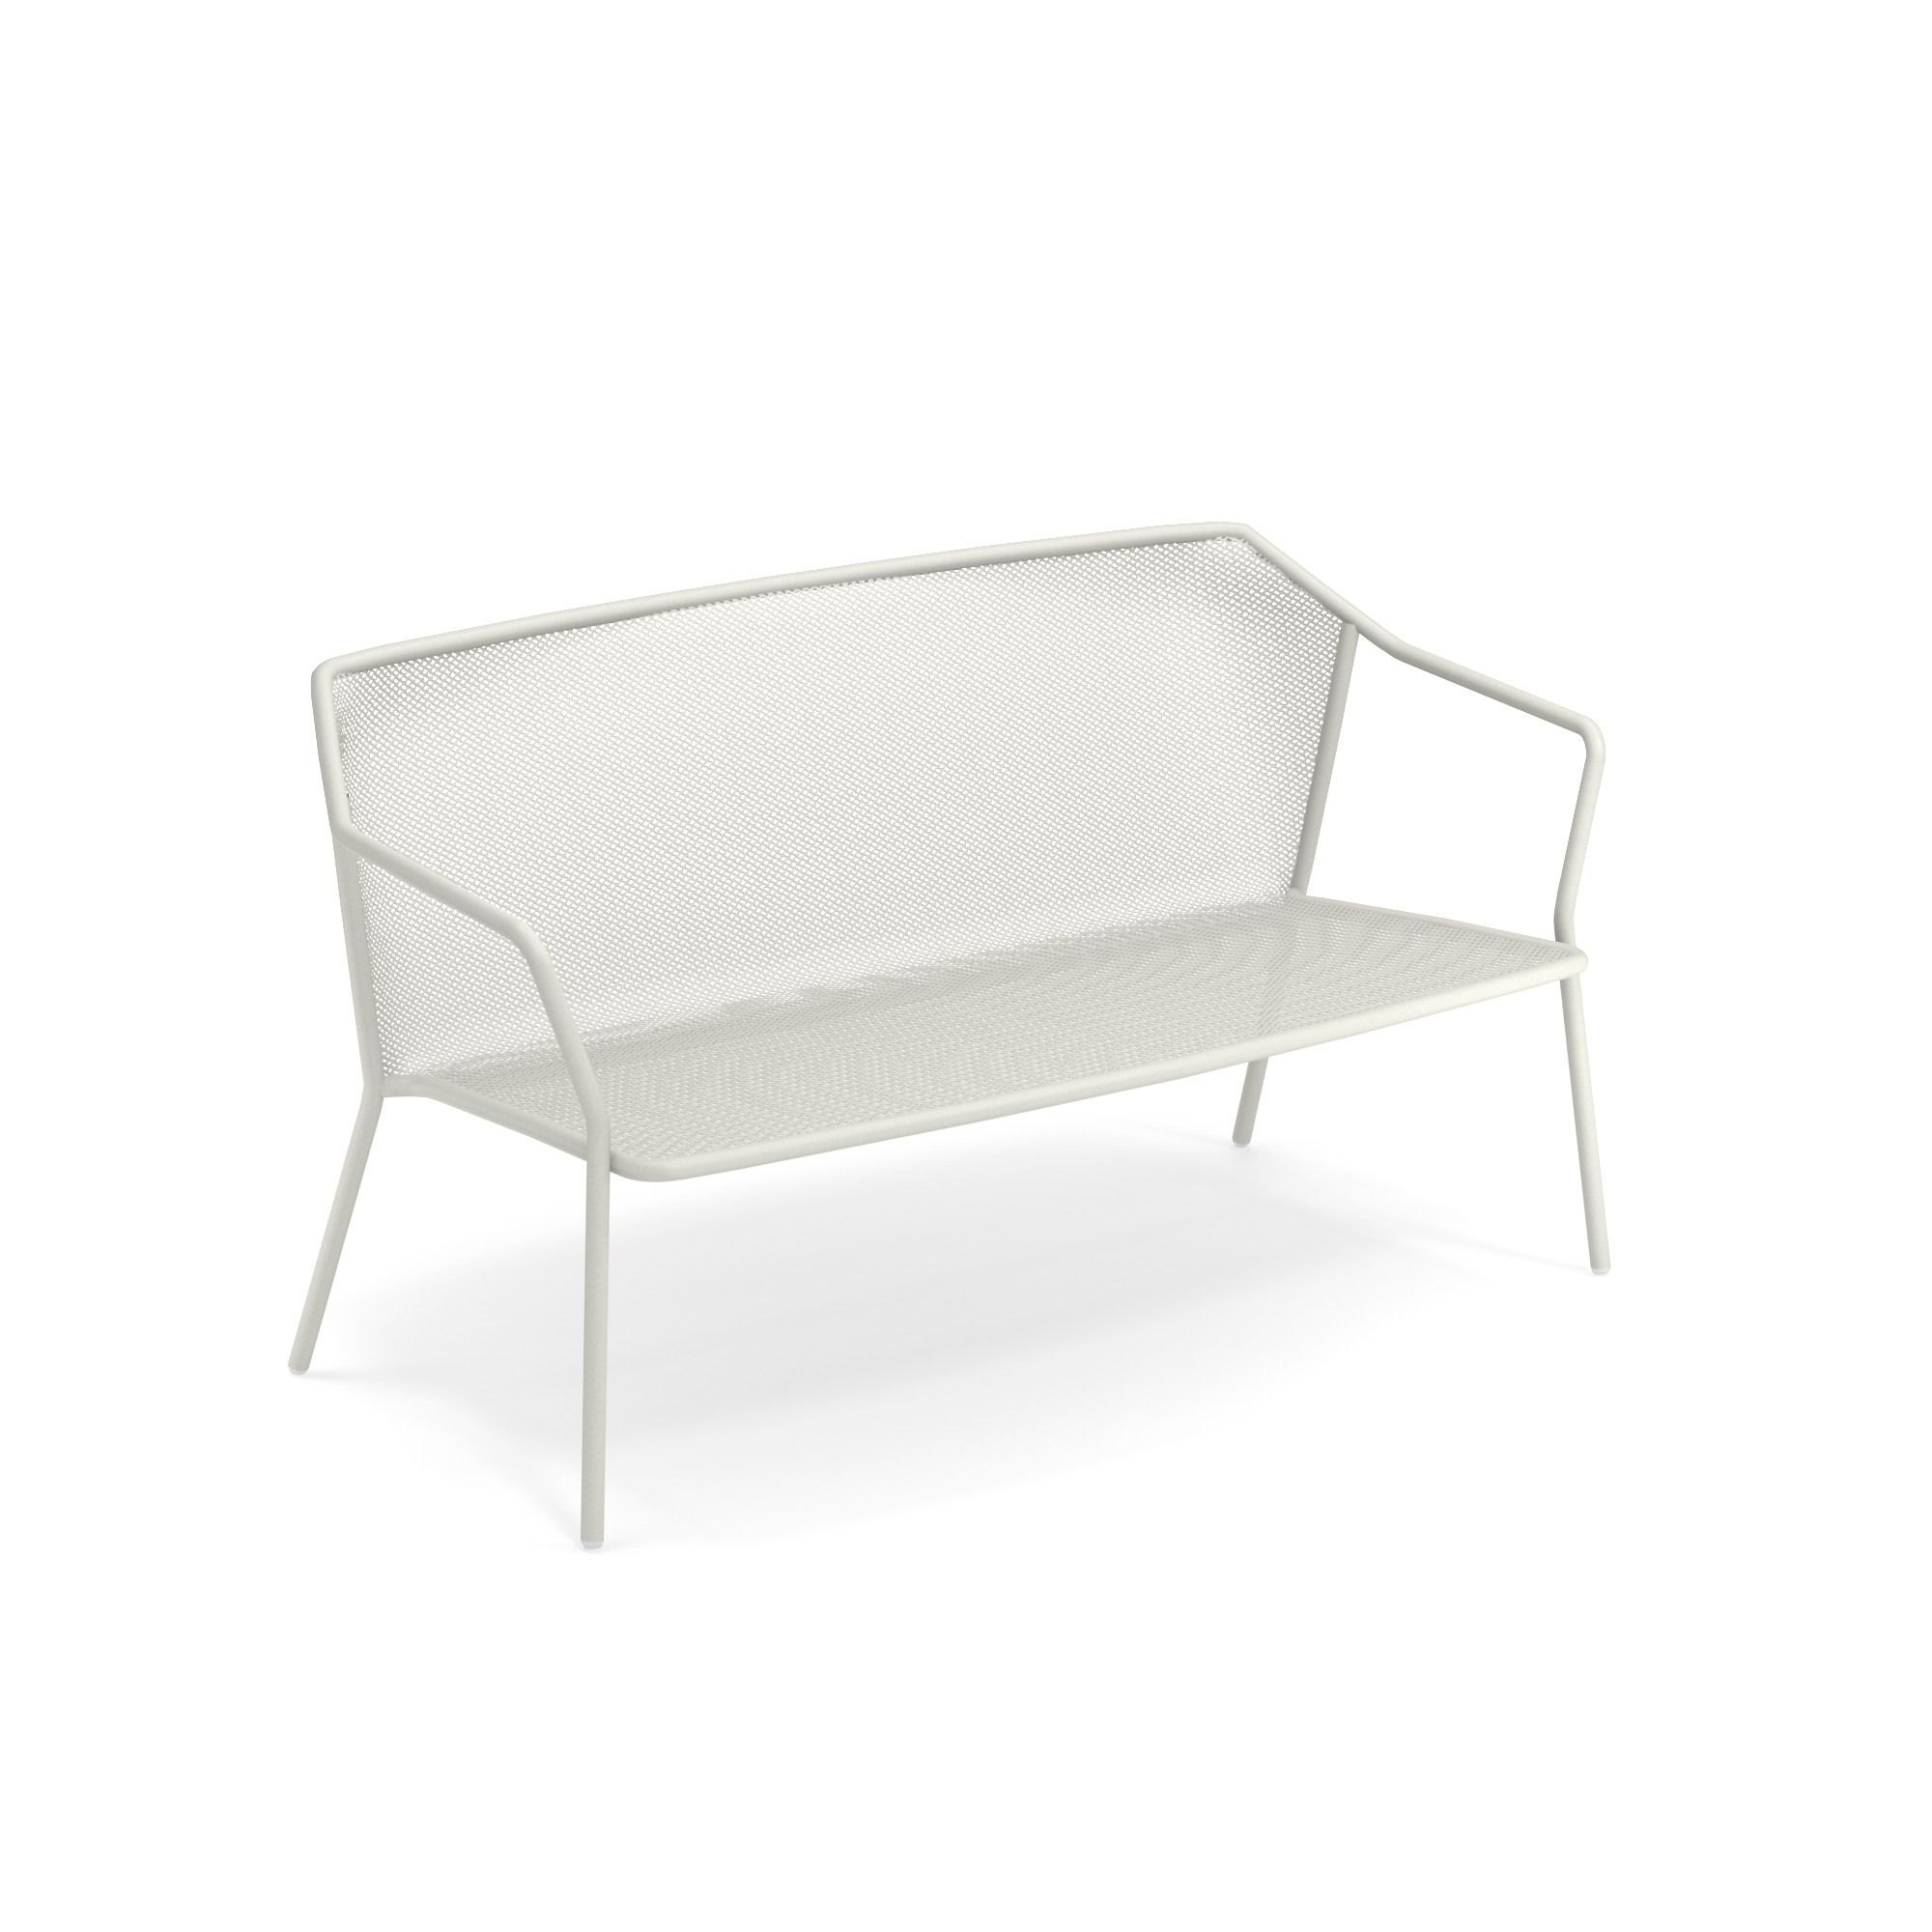 emuamericas, llc 527-23 sofa seating, outdoor